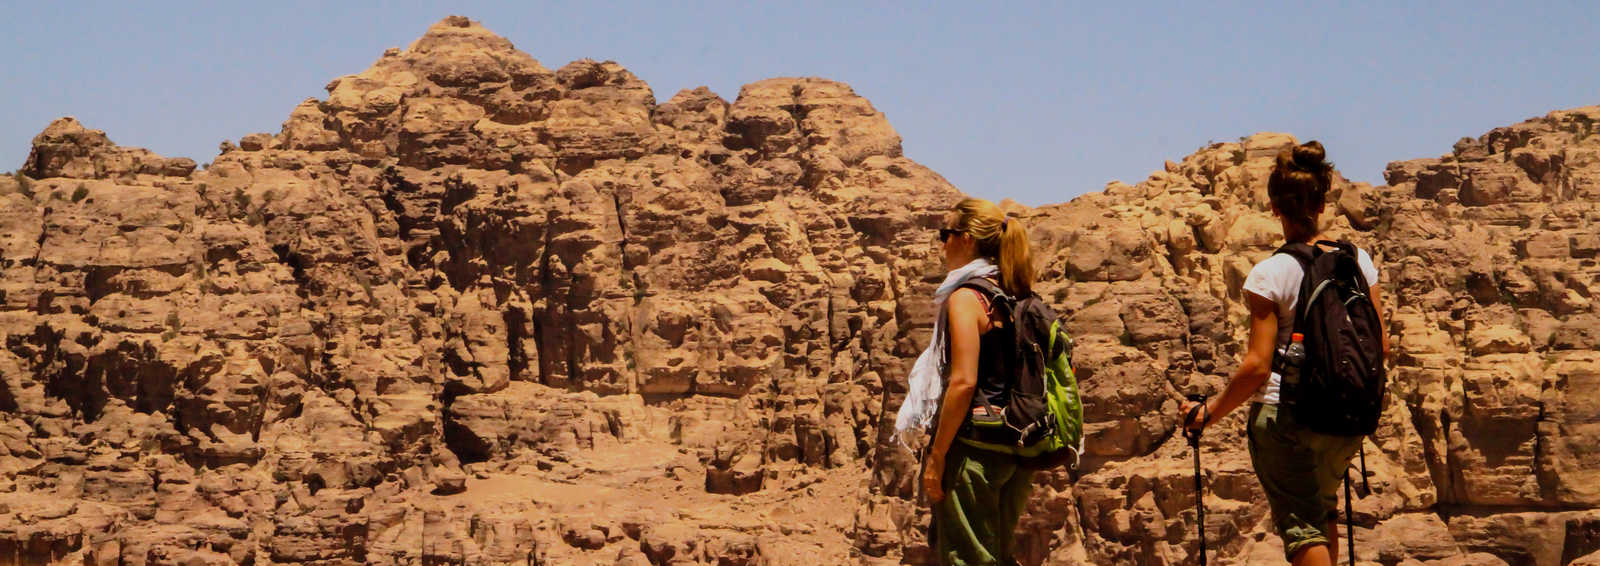 Group taking a breather in Wadi Rum, Jordan